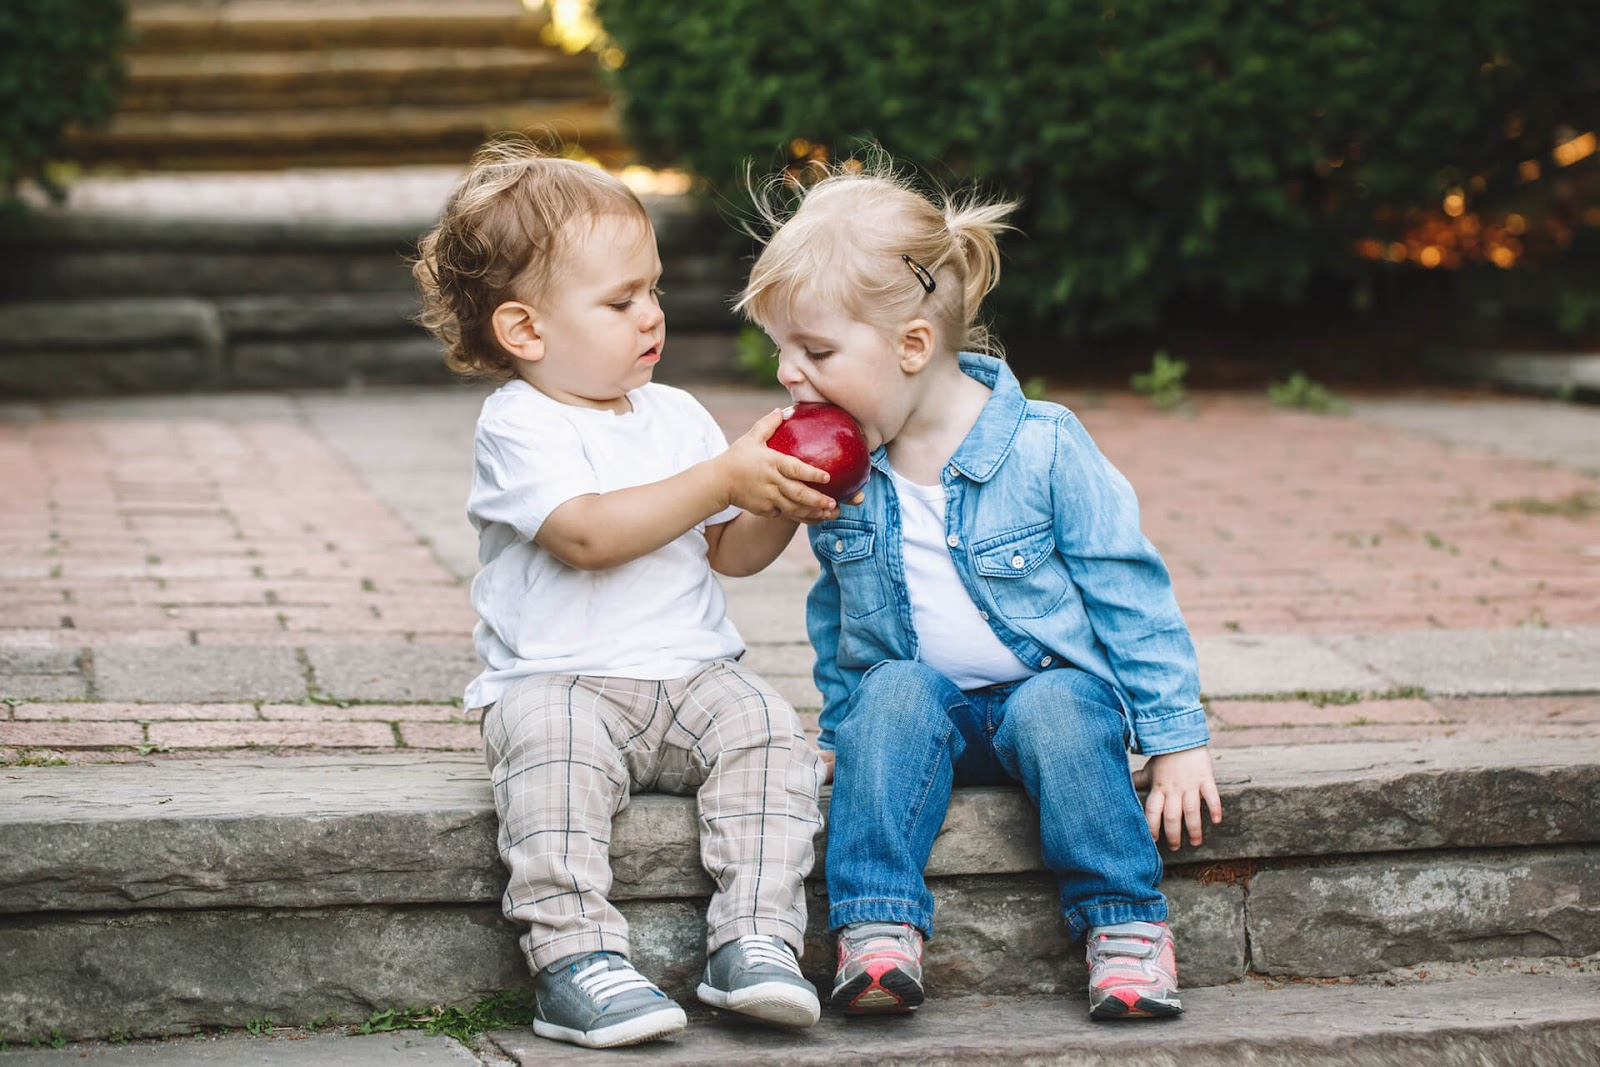 Toddler boy sharing his apple with a girl